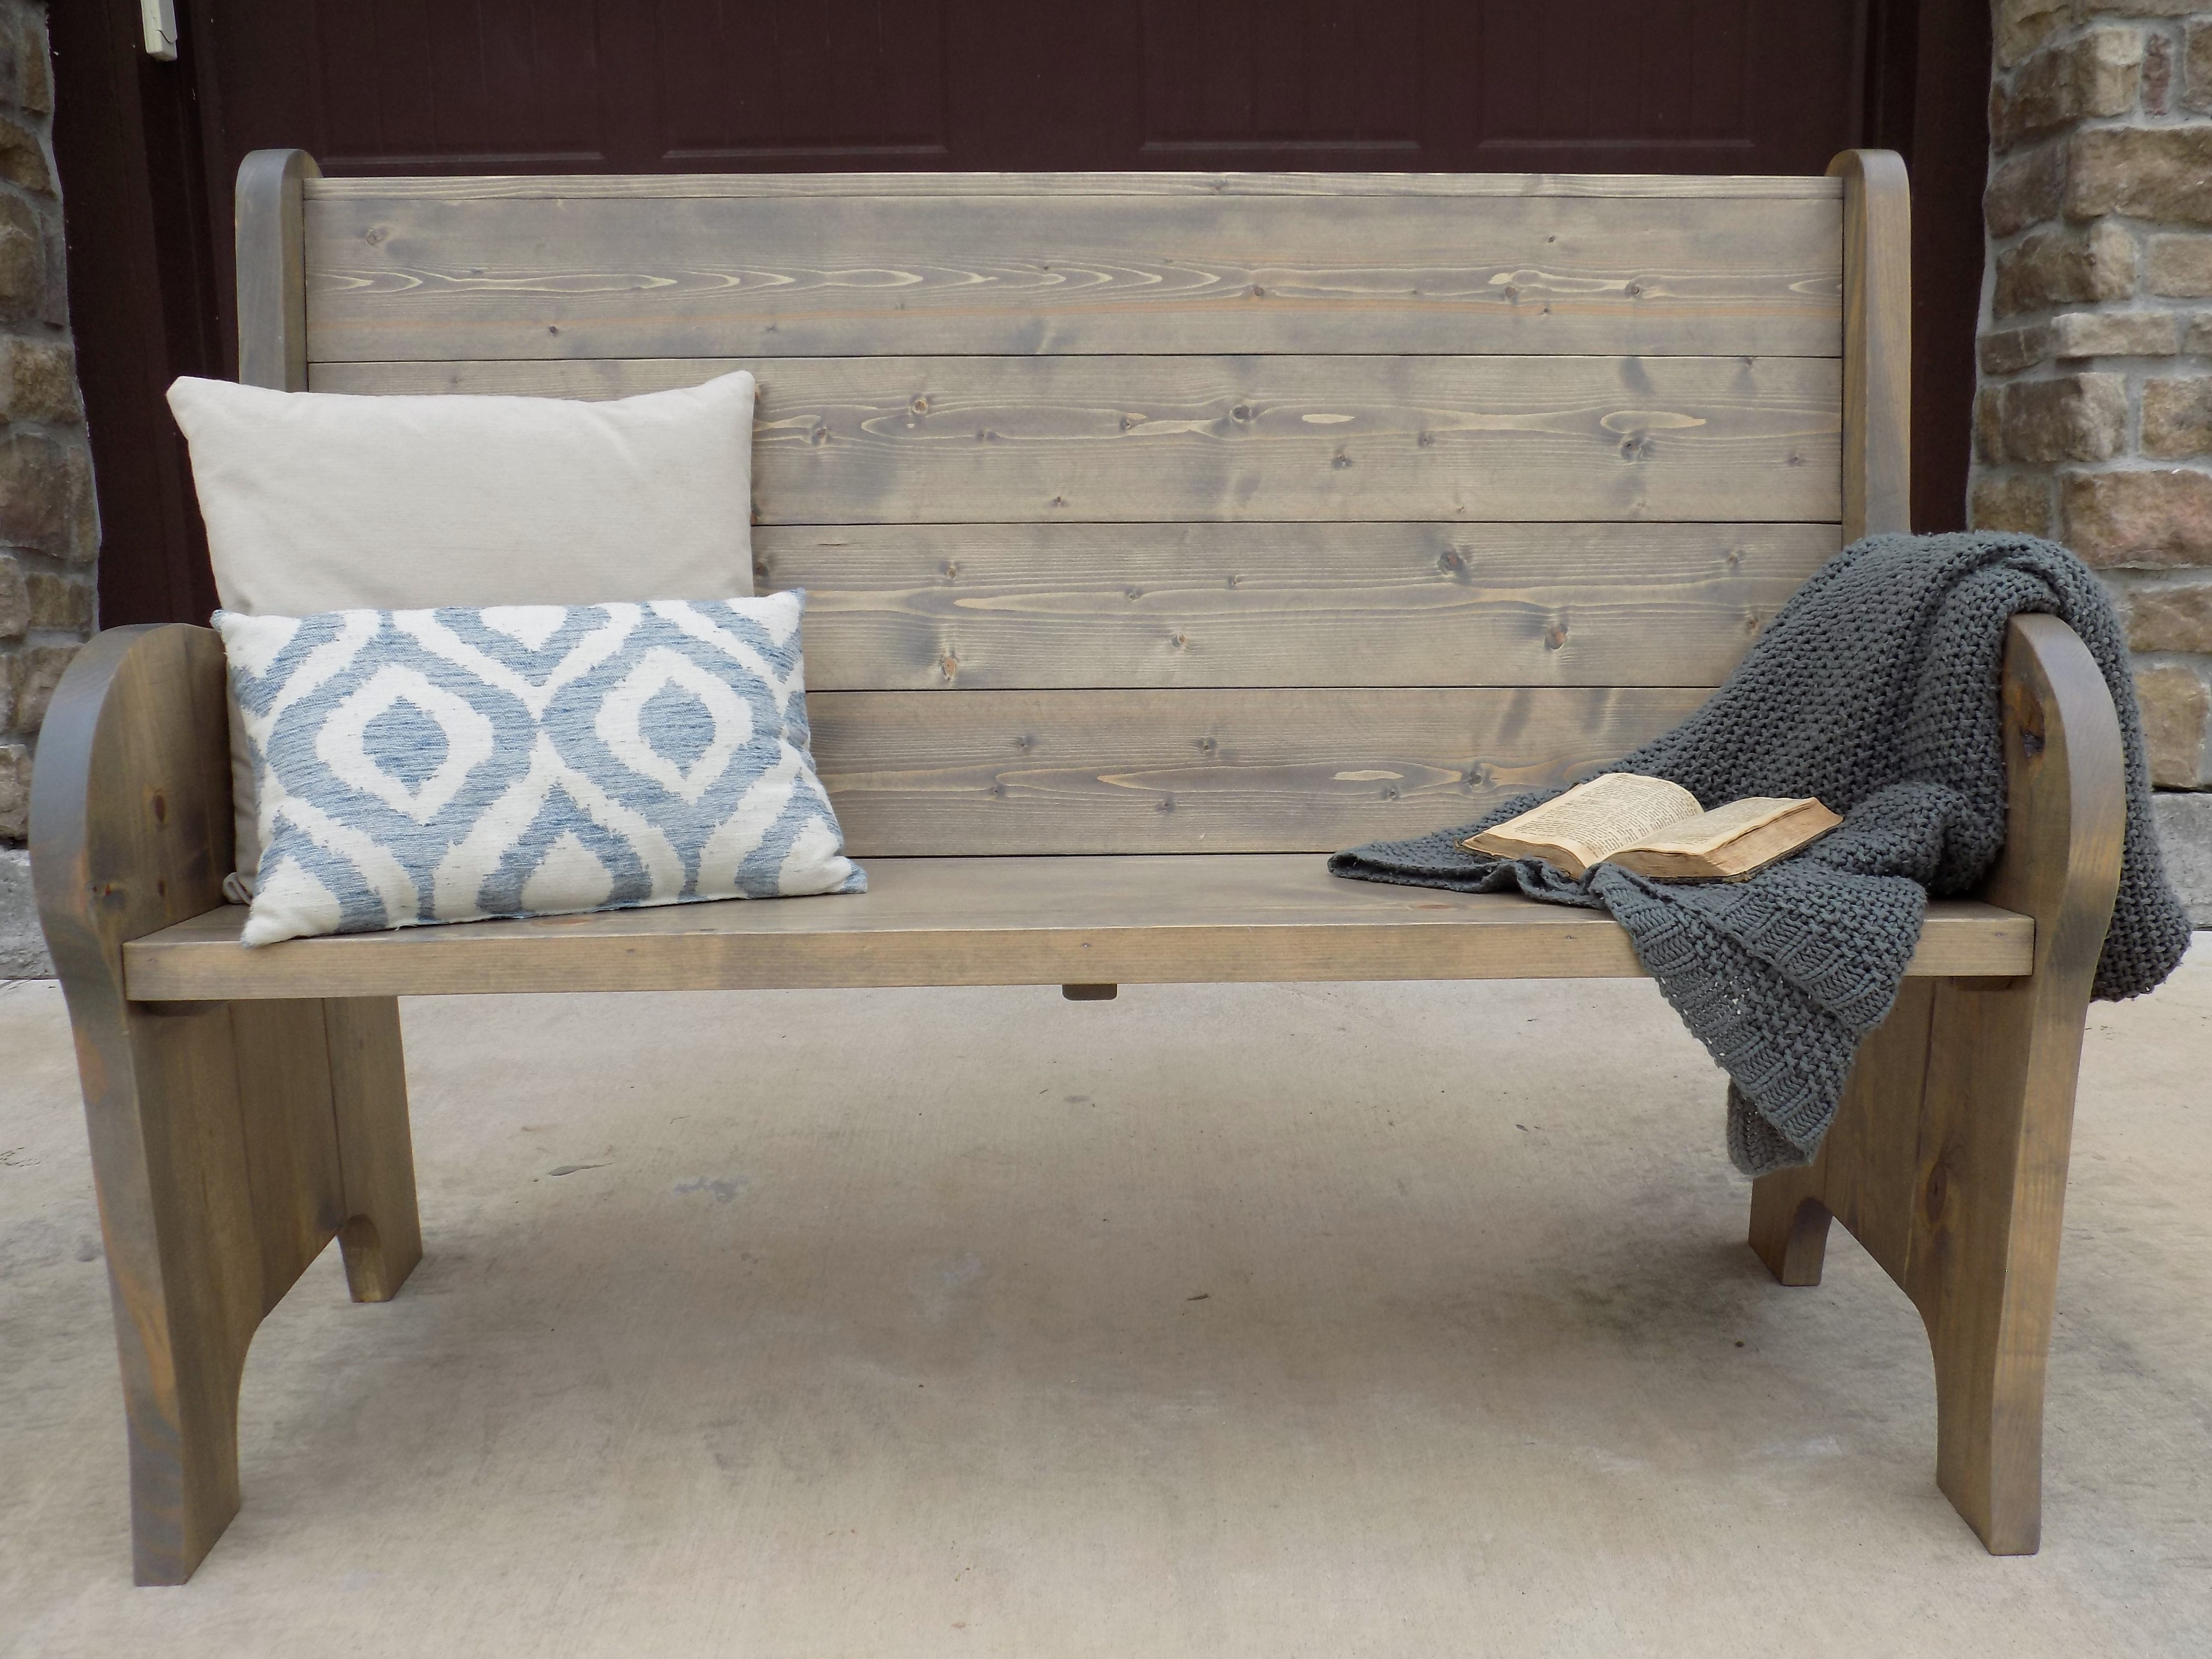 ana white church pew style entry bench diy projects